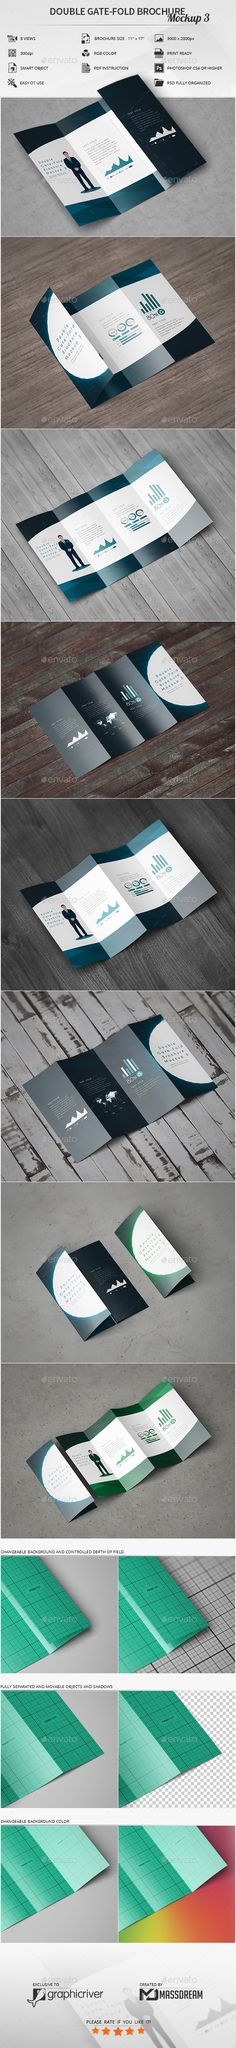 A Gatefold Brochure Mockup  Mockup Brochures And Book Design Layout